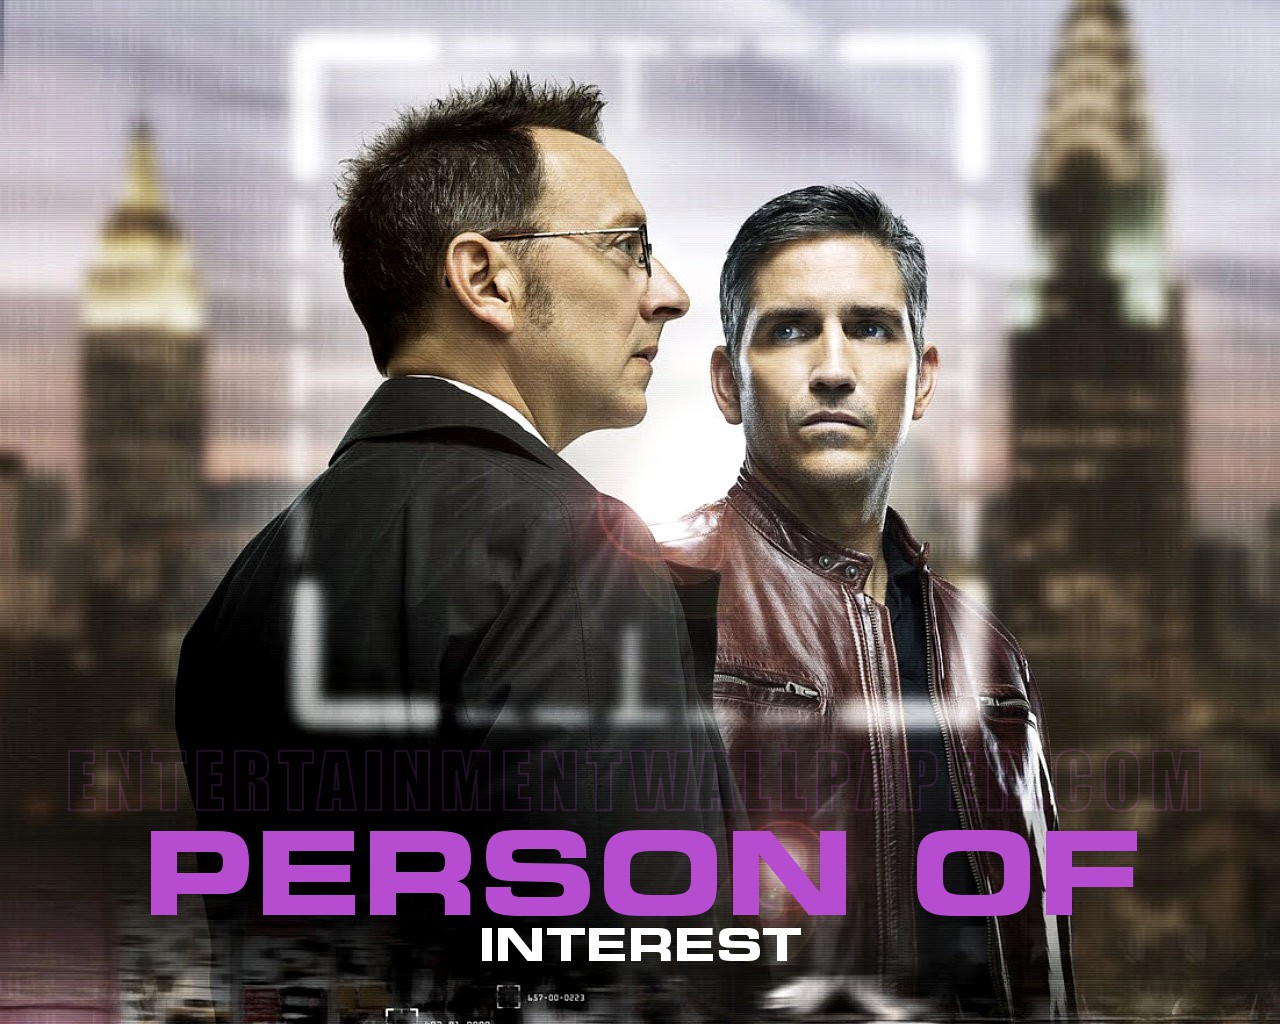 PERSON OF INTEREST - PERSON OF INTEREST Wallpaper (30429673) - Fanpop